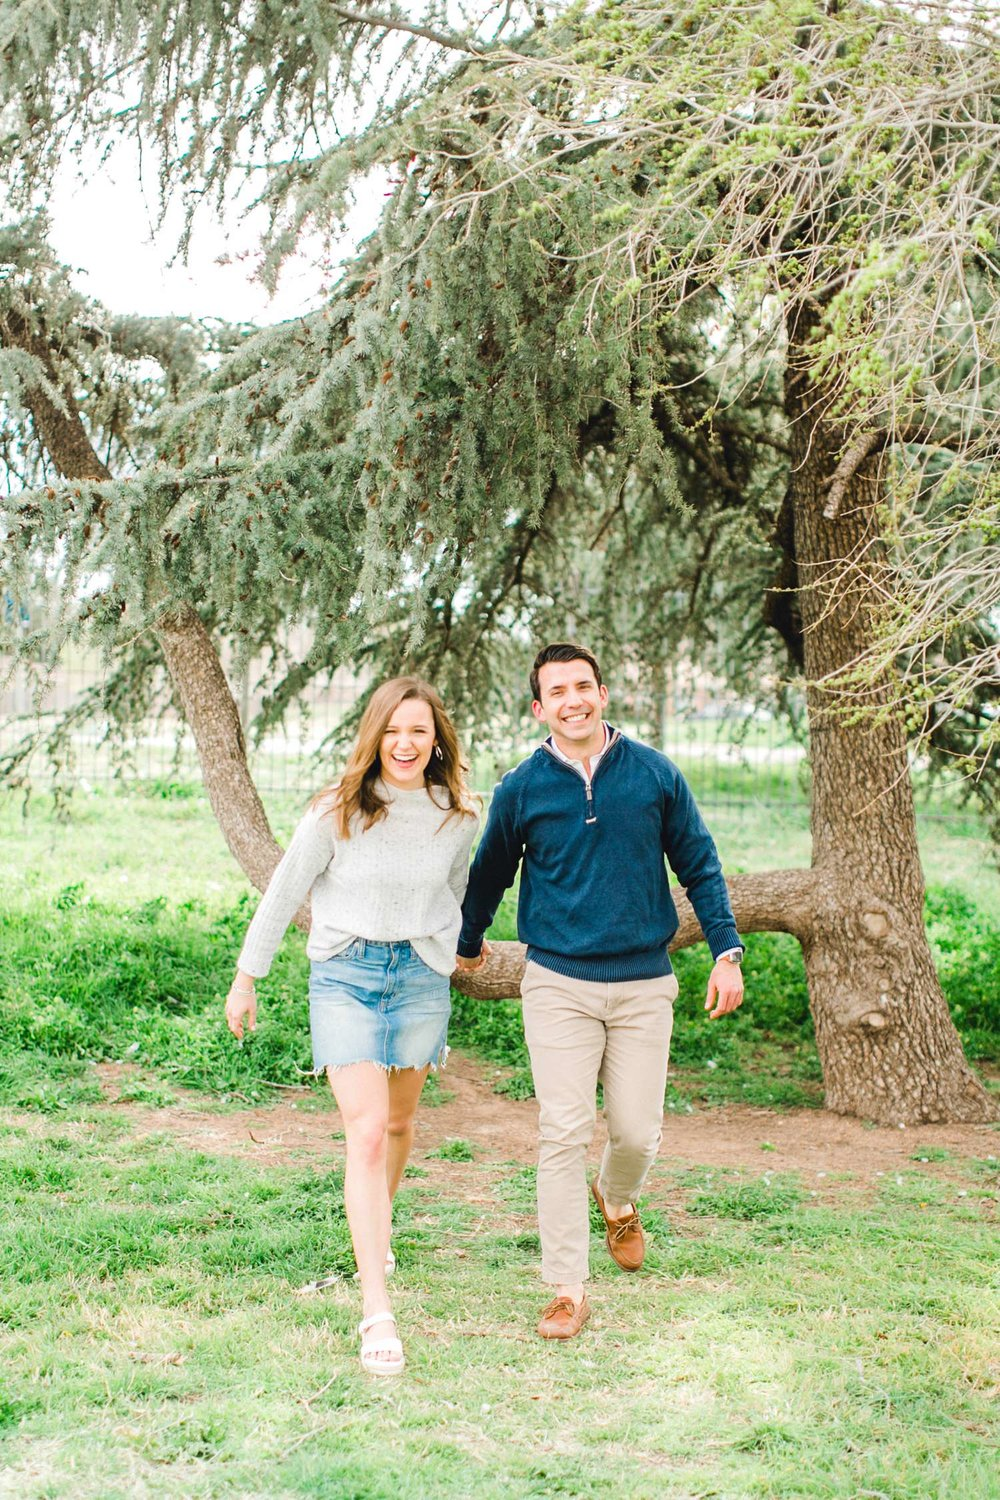 CAROLINE+CHRISTIAN+ALLEEJ+ENGAGEMENTS+LUBBOCK+WEDDING+PHOTOGRAPHER+FIRST+BAPTIST+CHURCH_0009.jpg